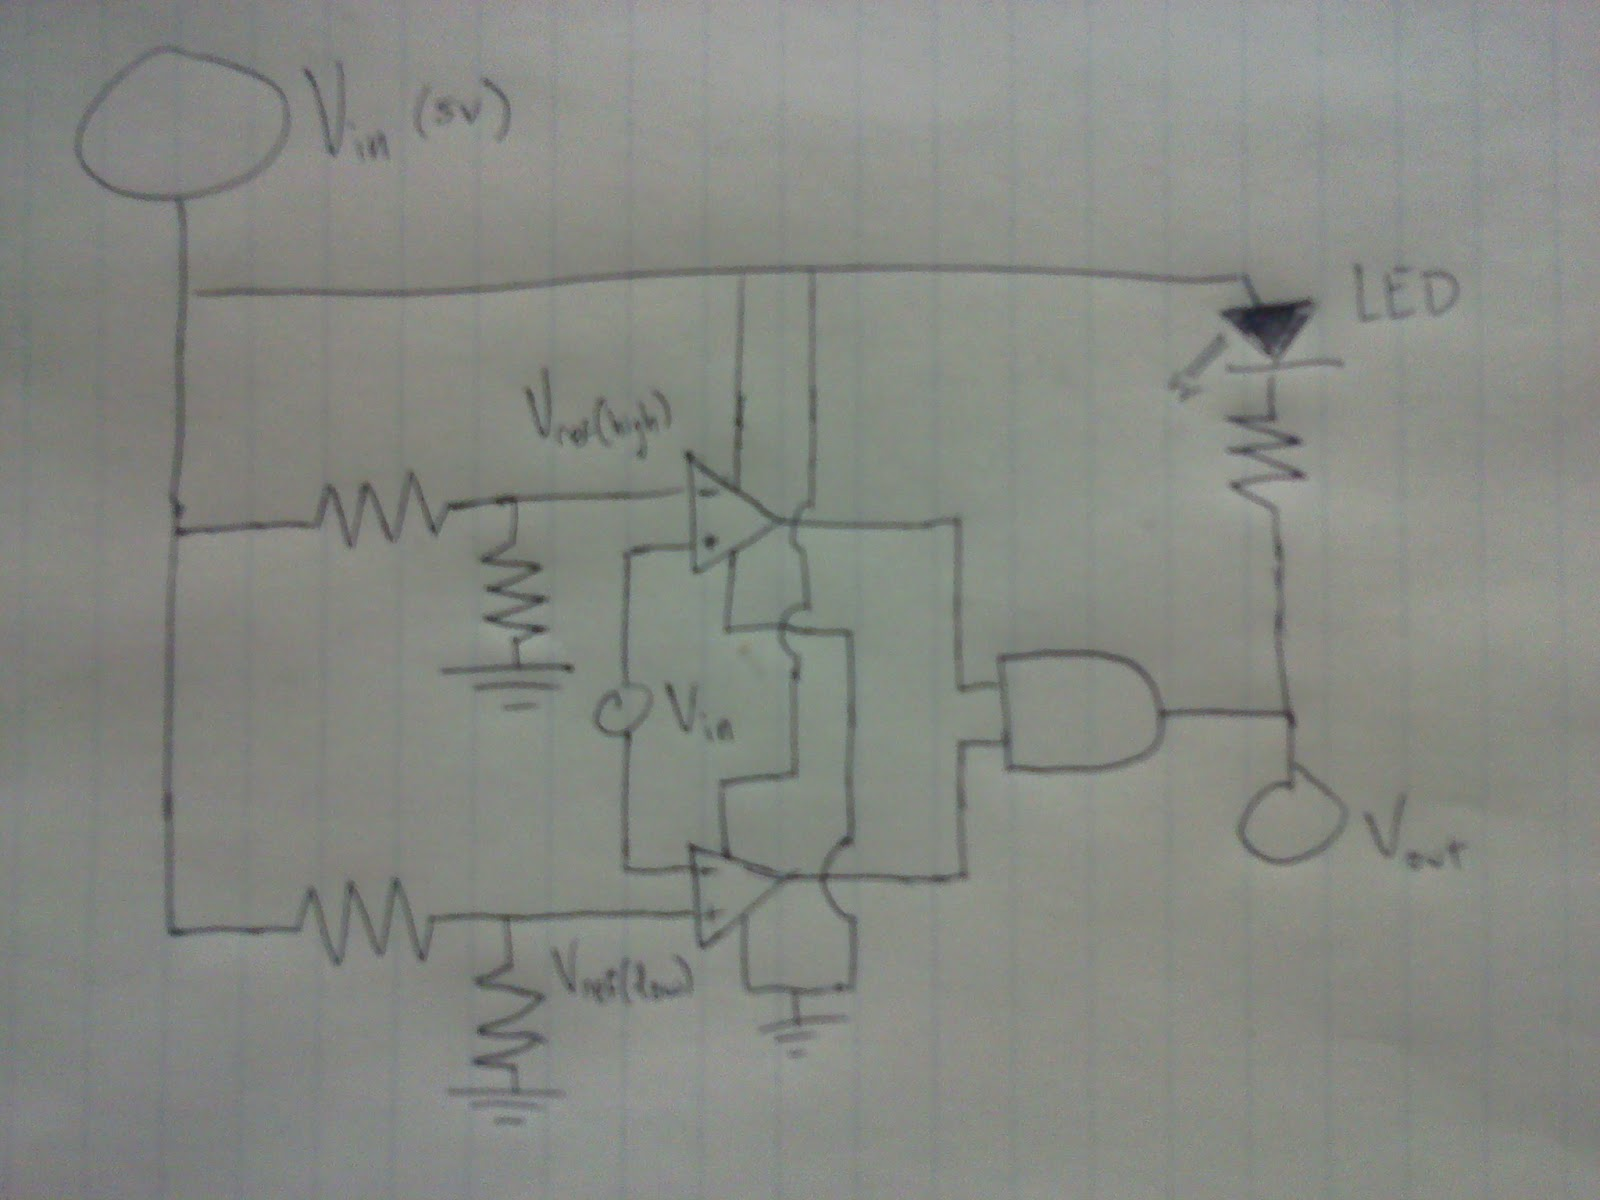 Initial Comparator Circuit Tsae Project The Schematic For Lm339 Quad Voltage A Diagram Of I Tested Let Me Know If You See Something Obvious